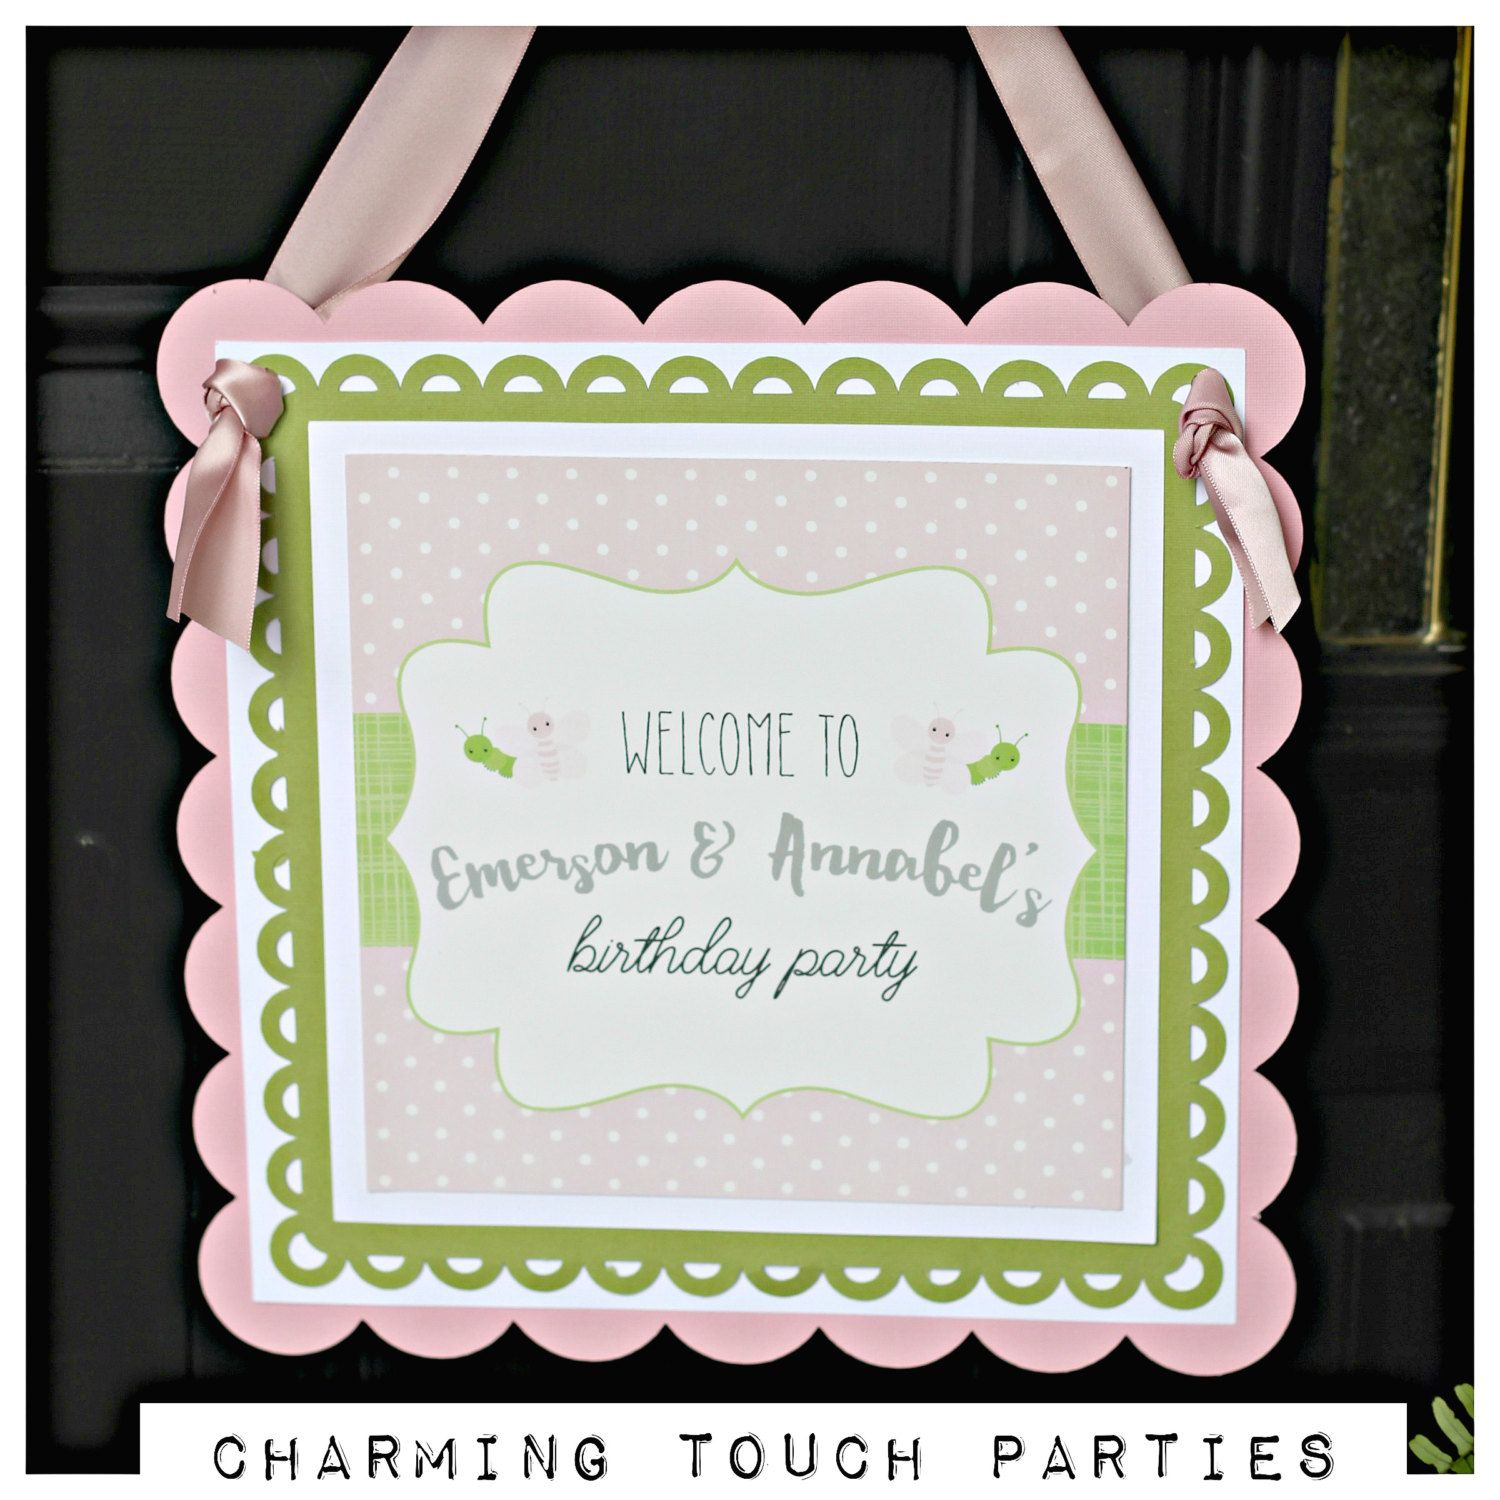 Pink and green butterfly and caterpillar birthday welcome door pink and green butterfly and caterpillar birthday welcome door hanger sign by charming touch parties jeuxipadfo Images